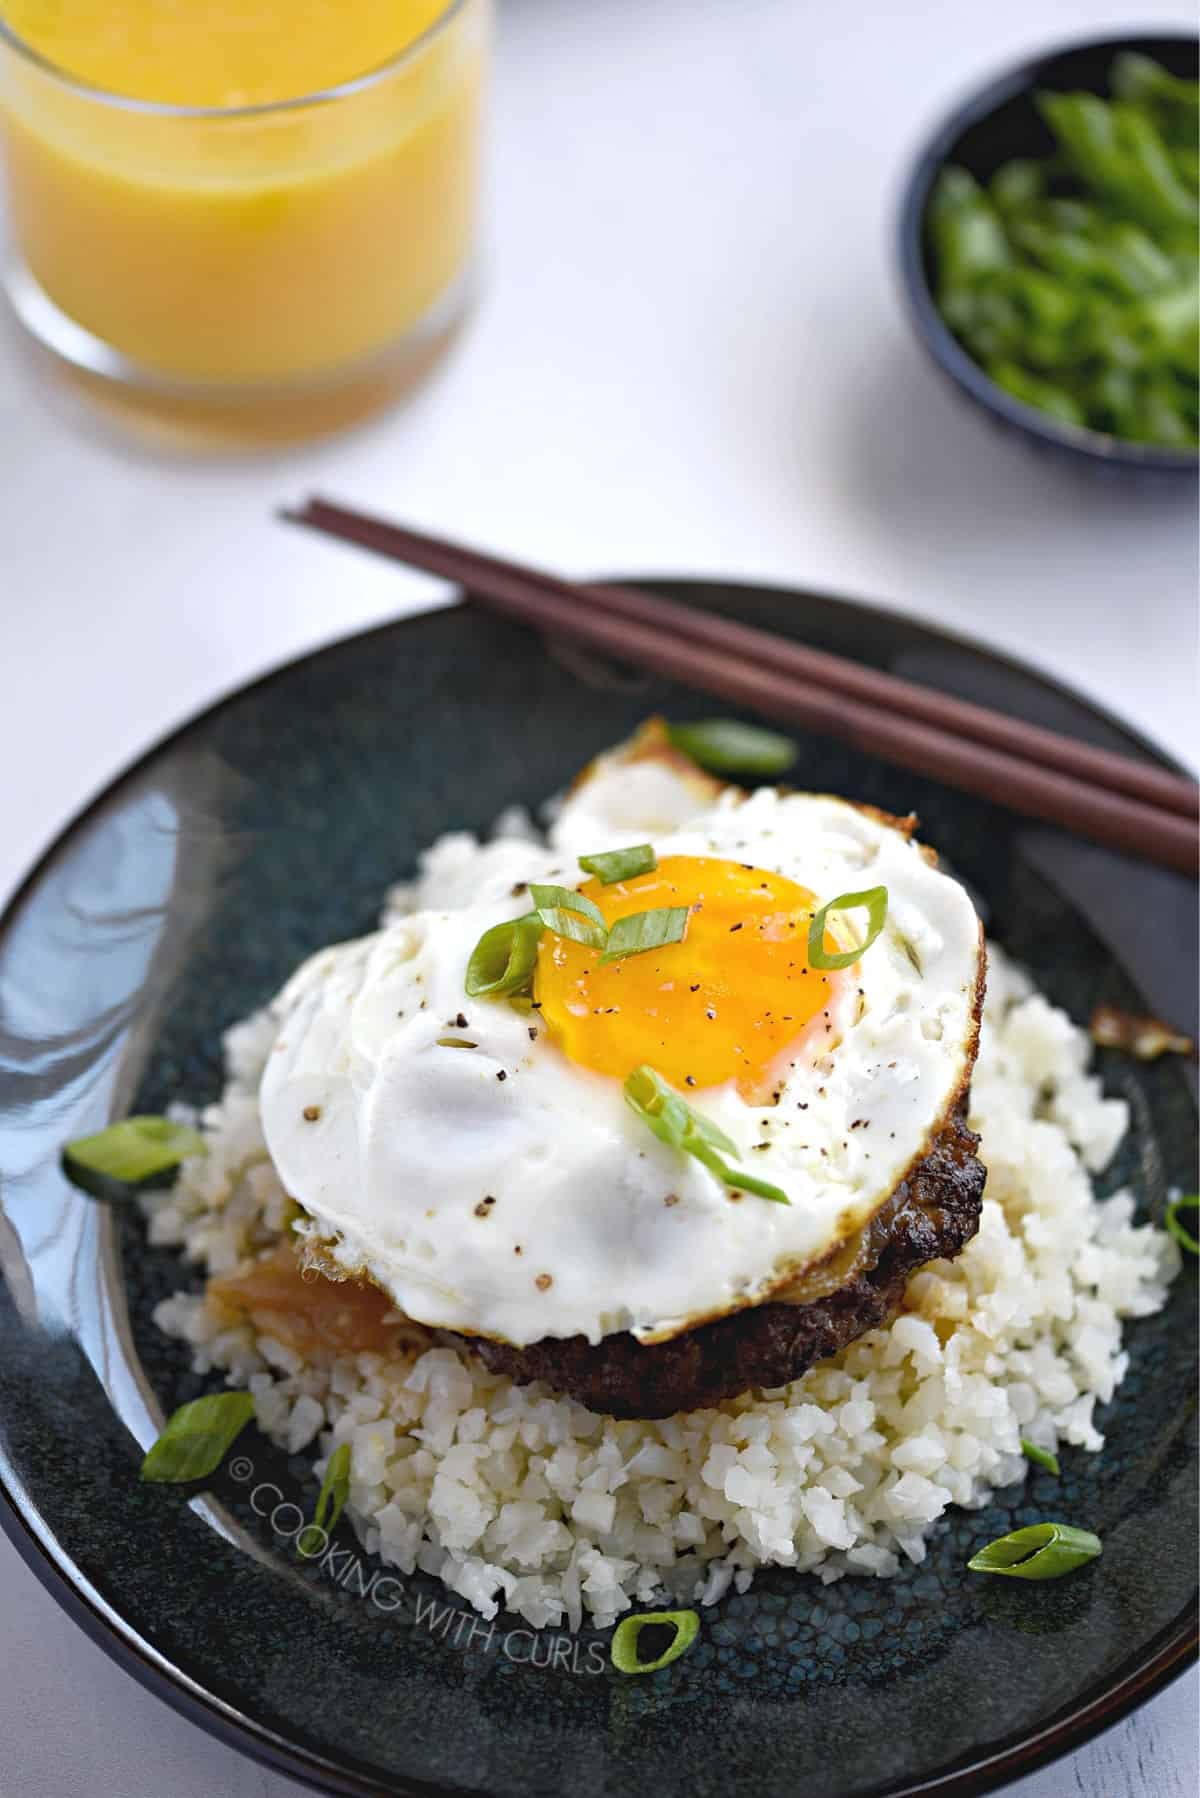 looking down on a sunny-side up egg on top of a burger patty covered in gravy on a bed of rice with a glass of orange juice and small bowl of green onions in the background.